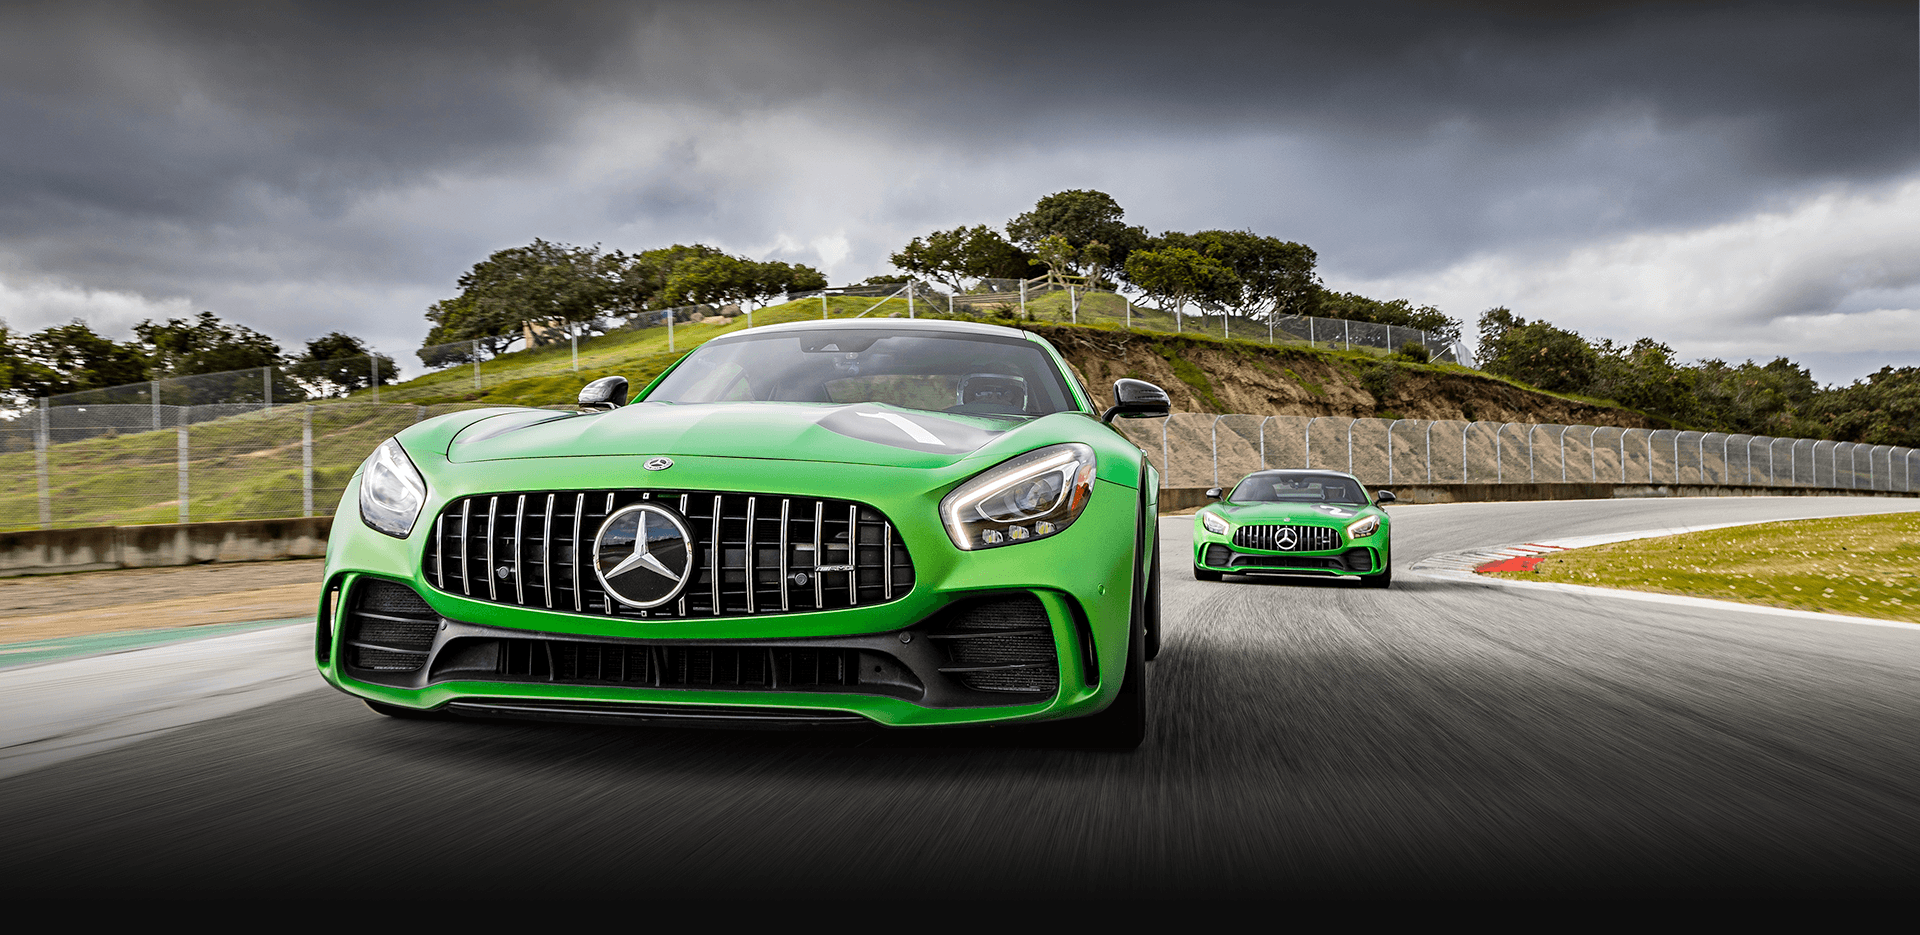 Two green Mercedes AMG Vehicles on Laguna Seca Raceway in Salinas, CA